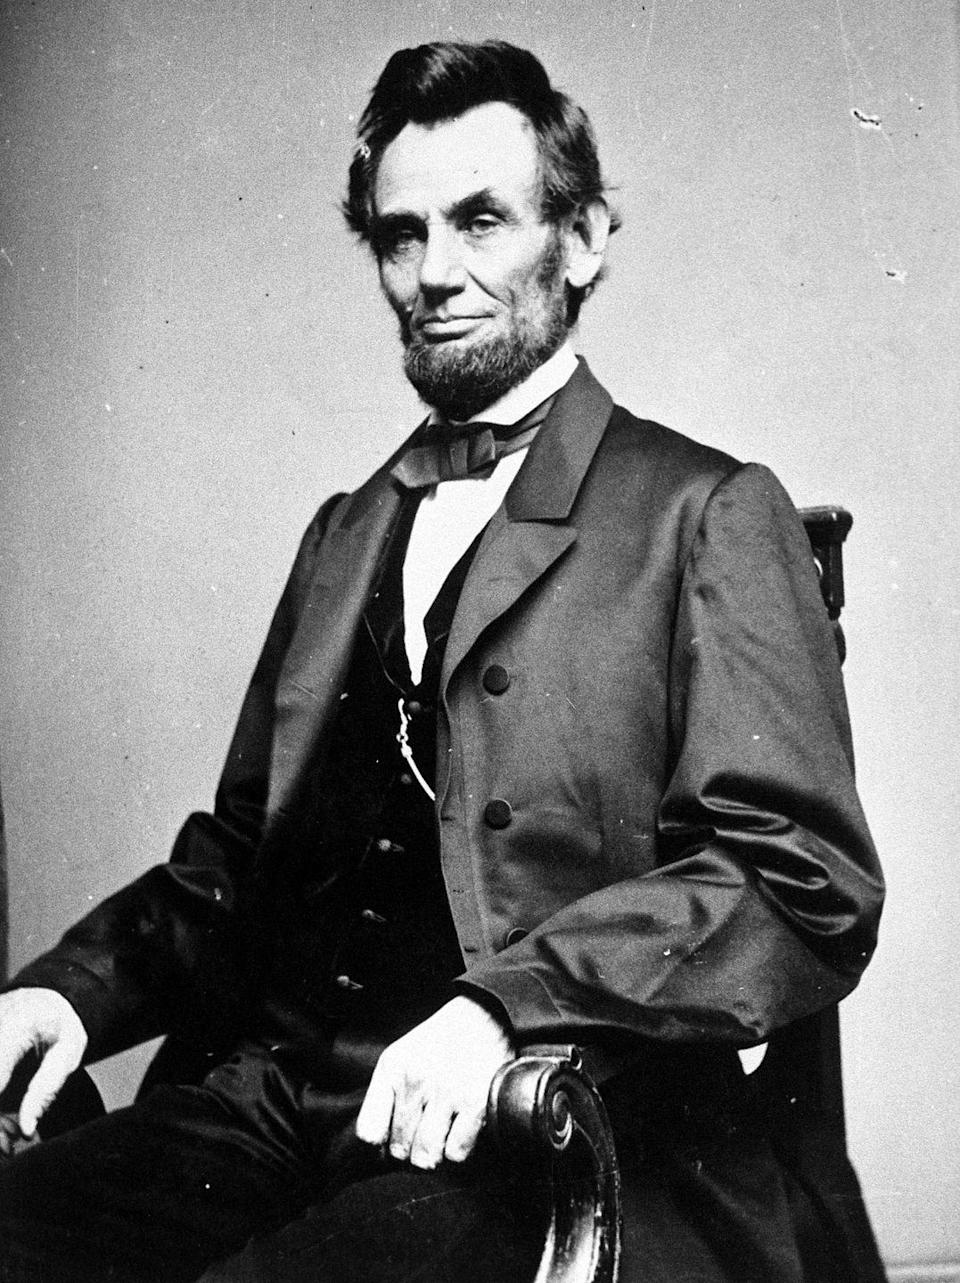 "<p>In 1862, King Mongkut of Siam attempted to gift President Abraham Lincoln with a ""supply of elephants"" to populate America's forests. Lincoln wrote a letter back, <a href=""https://www.newyorker.com/news/news-desk/presidential-swag-and-the-gift-horse"" rel=""nofollow noopener"" target=""_blank"" data-ylk=""slk:rejecting the gift"" class=""link rapid-noclick-resp"">rejecting the gift</a>. ""Our political jurisdiction, however, does not reach a latitude so low as to favor the multiplication of the elephant, and steam on land, as well as on water, has been our best and most efficient agent of transportation,"" he wrote.</p>"